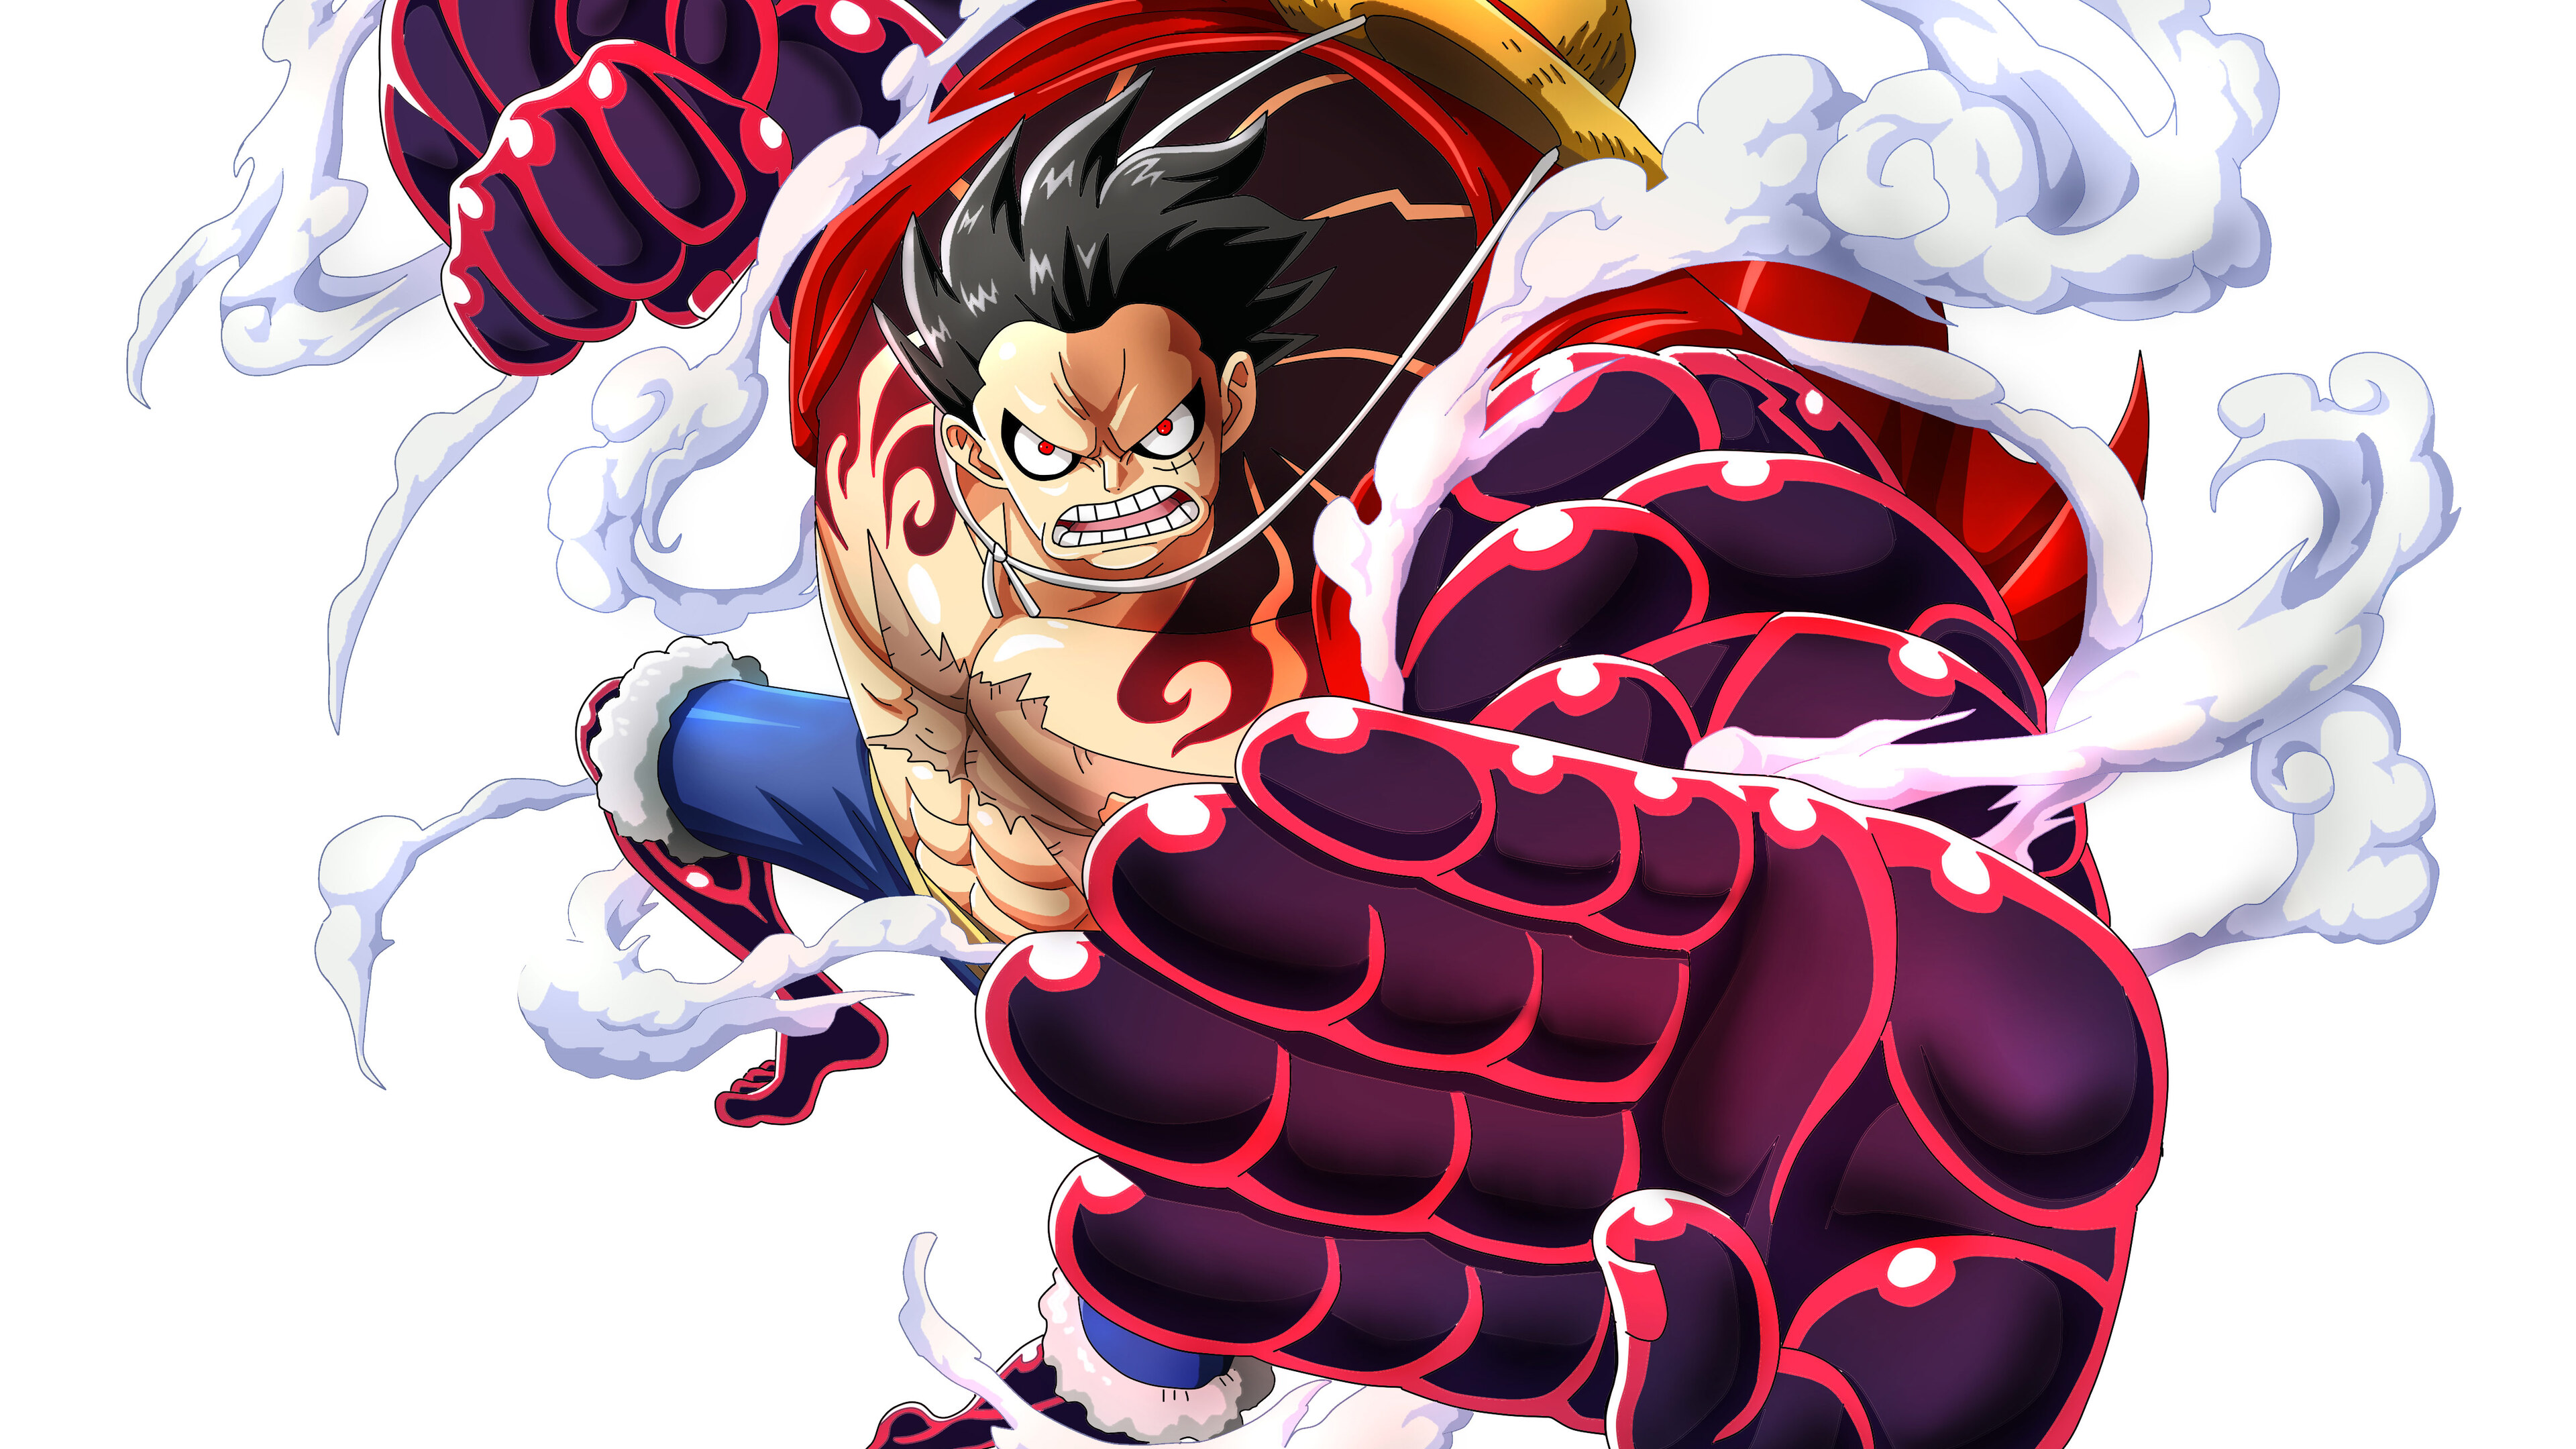 Perfect screen background display for desktop, iphone, pc, laptop, computer,. 3840x2160 Monkey D Luffy One Piece 4k HD 4k Wallpapers ...